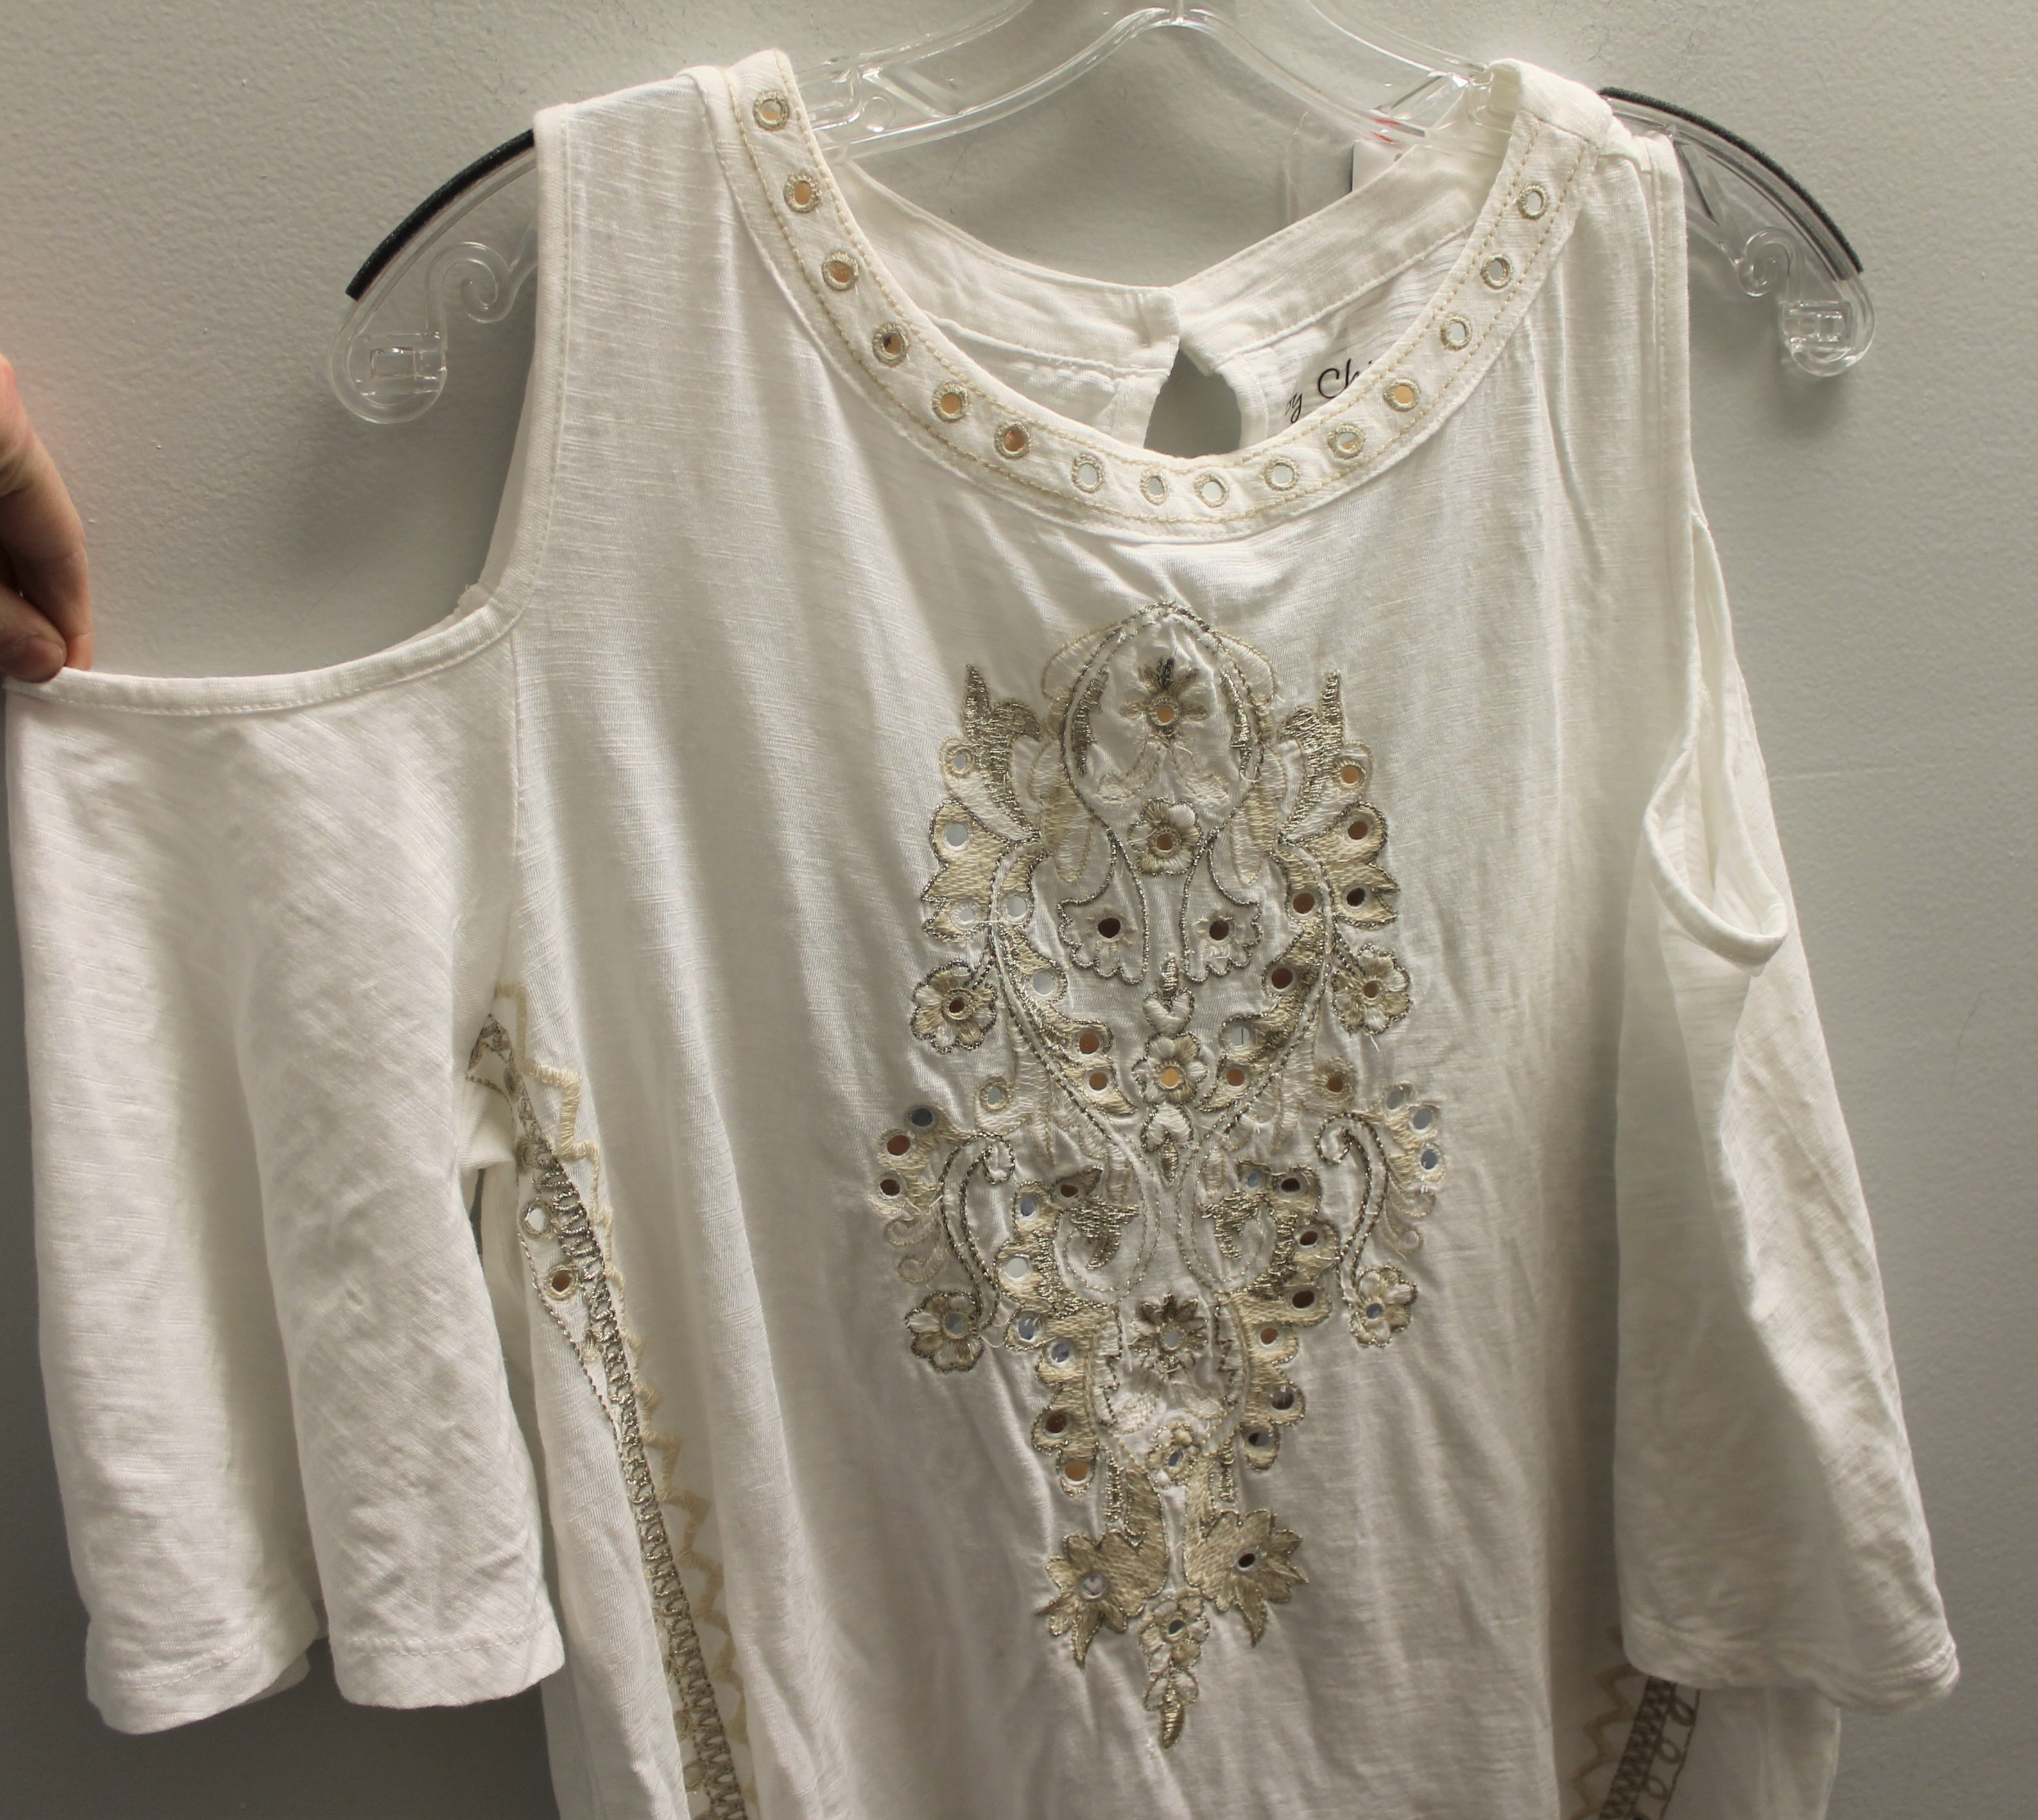 CHICOS-Size-M-white-and-gold-Cotton-Blend-Embroidered-Short-Sleeve-Top_89490B.jpg